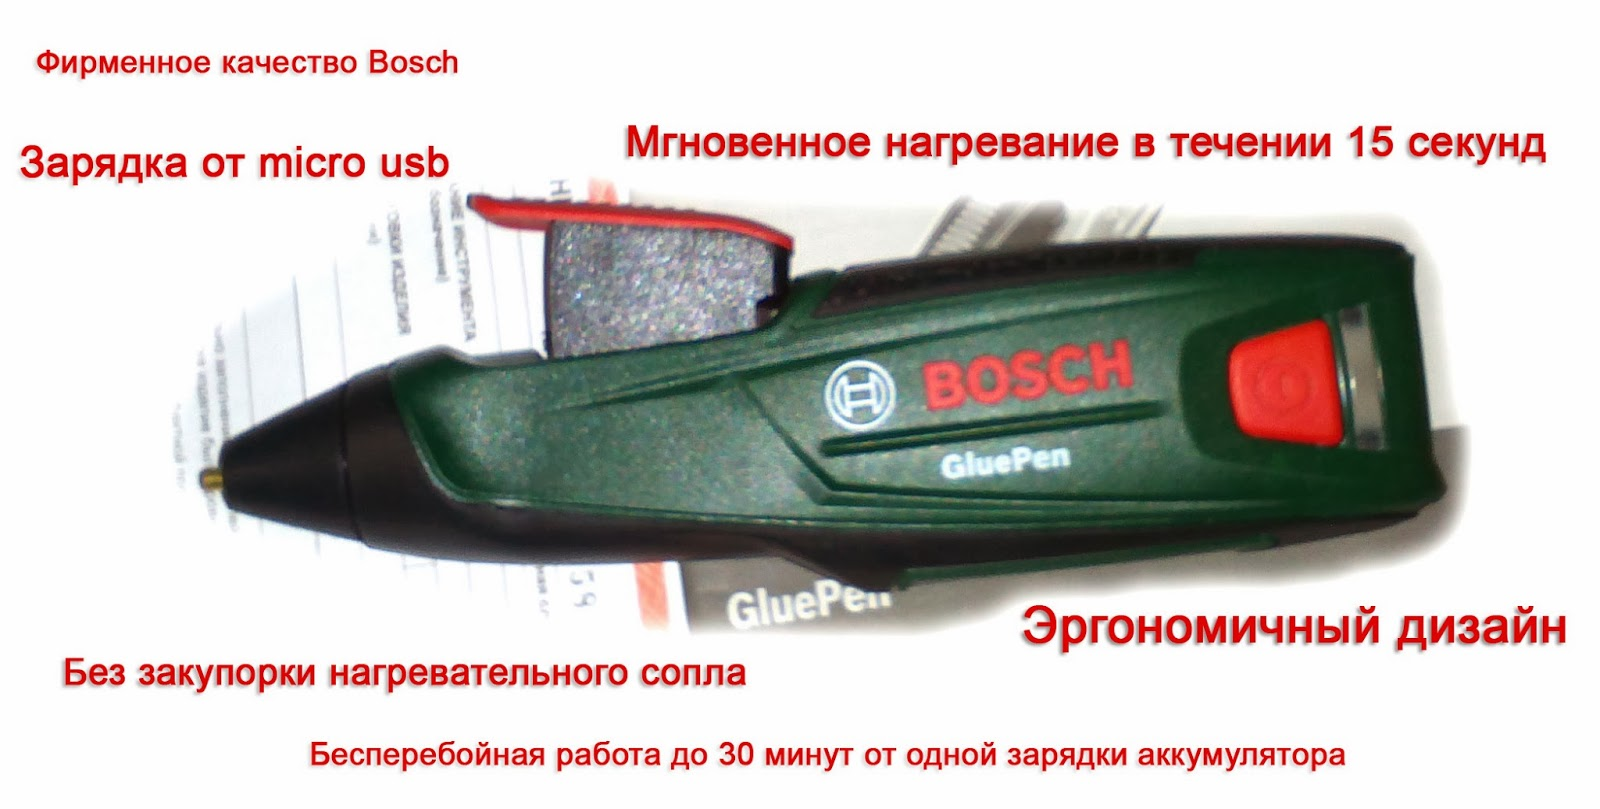 Bosch Glue Pen